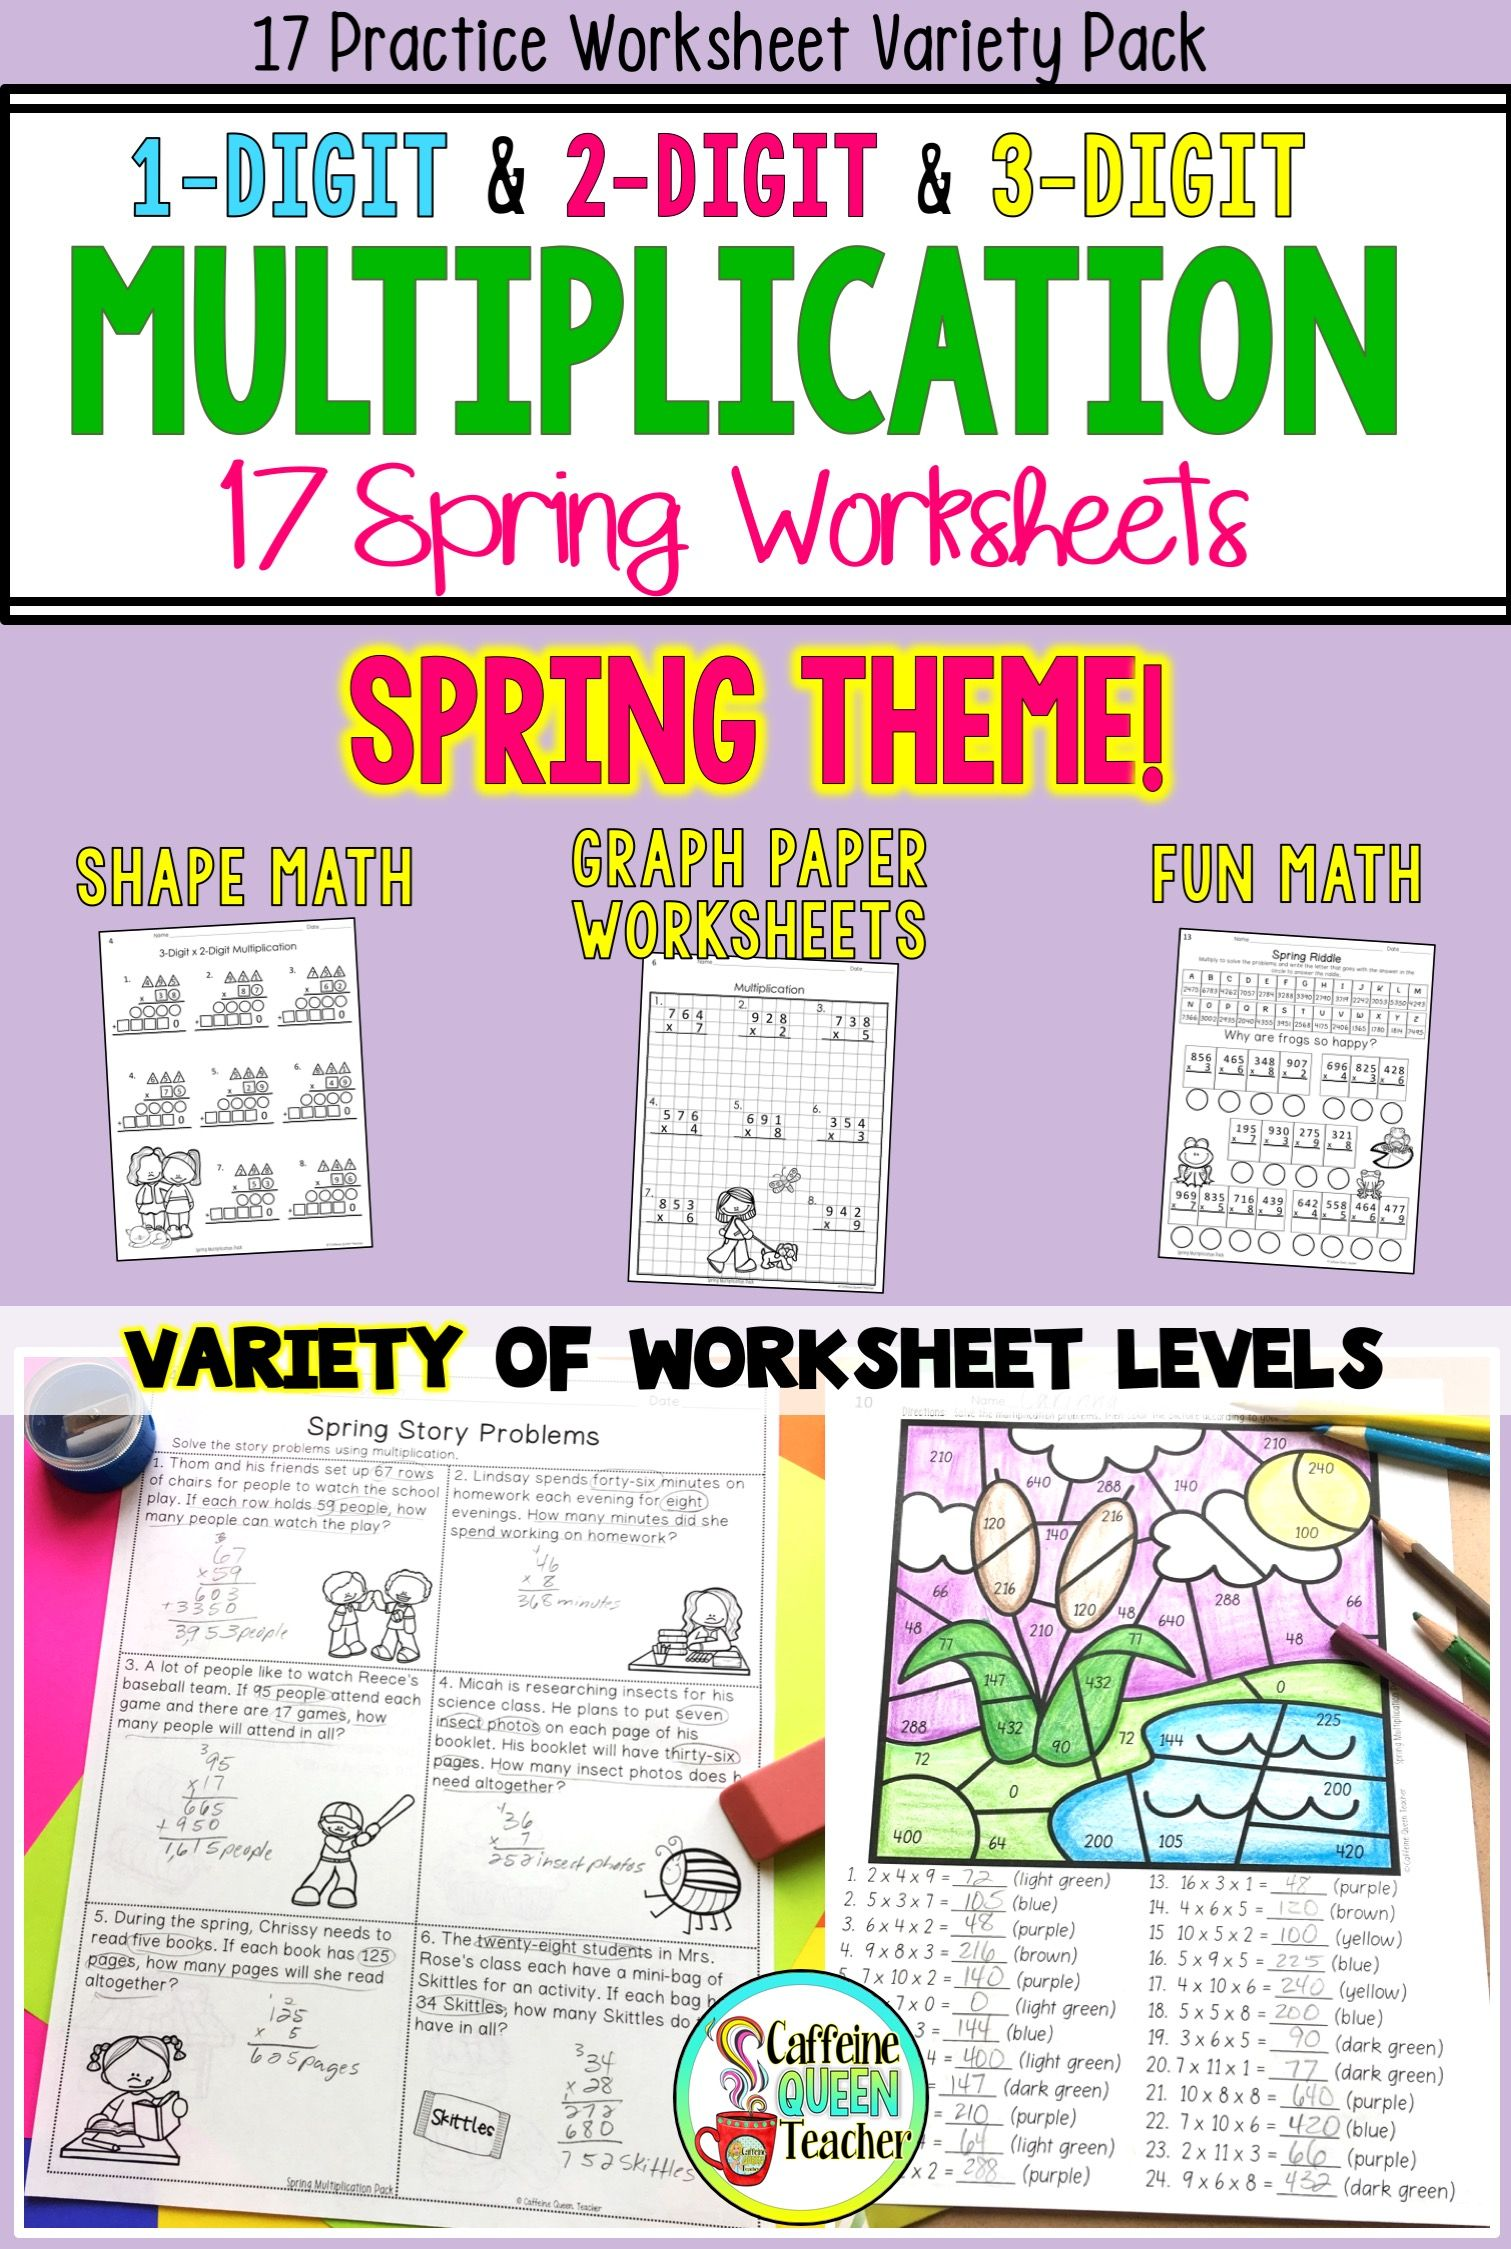 Spring Multiplication Packet 17 Different Worksheet Variety Pack Engaging Fun Practice For 3rd Grad Upper Elementary Math Basic Math Skills Elementary Math [ 2249 x 1511 Pixel ]